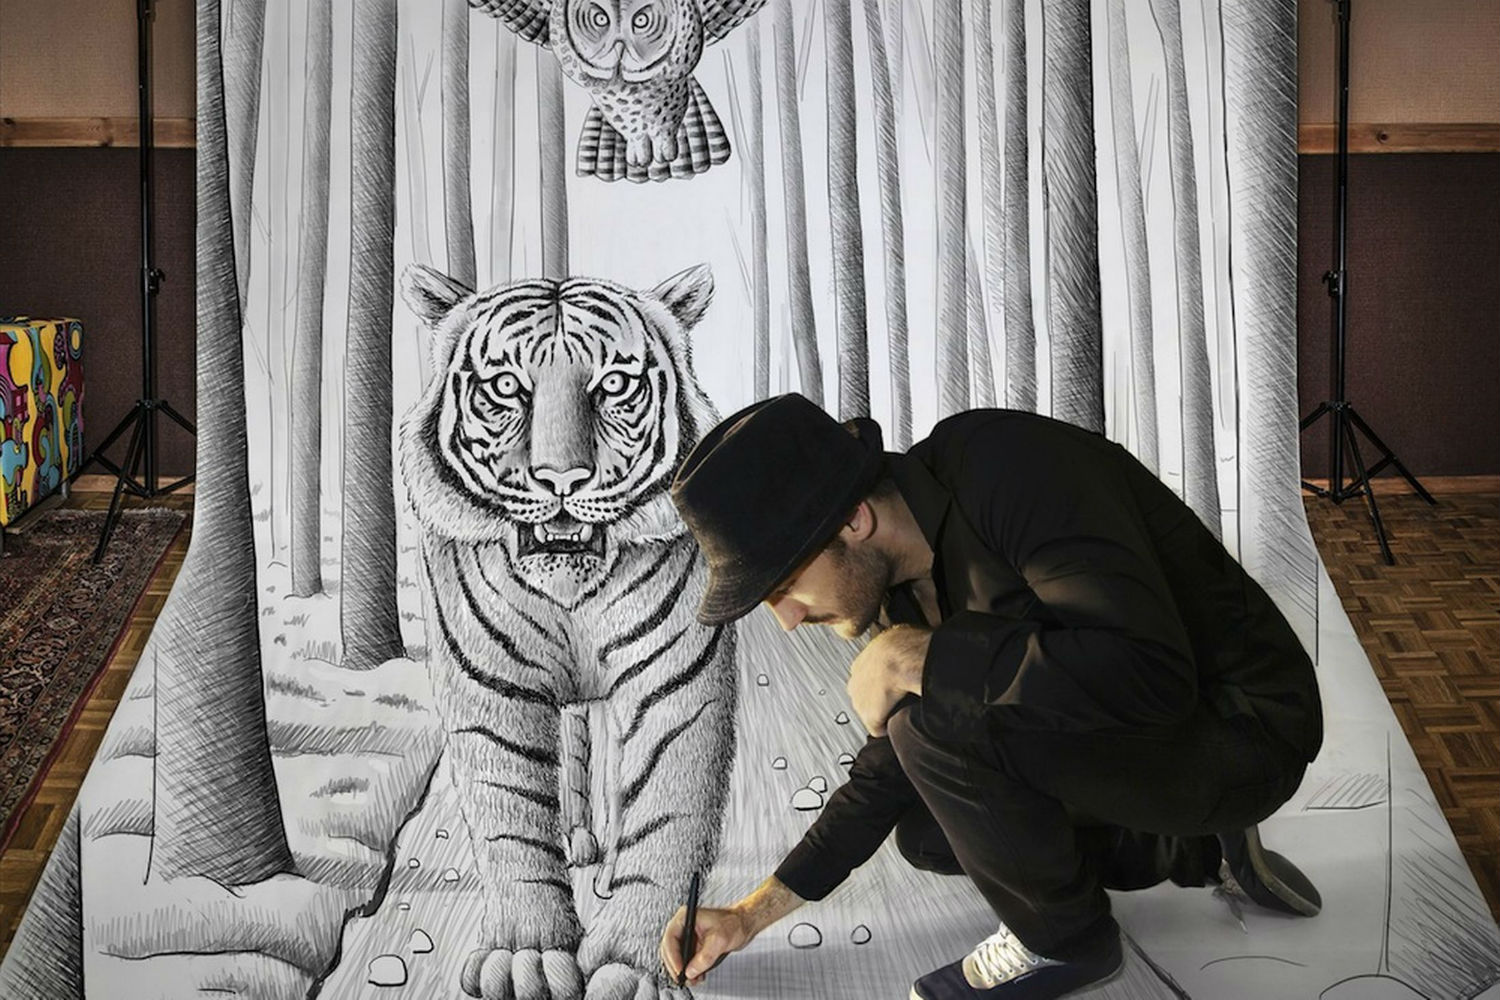 Tiger comes alive in 3d